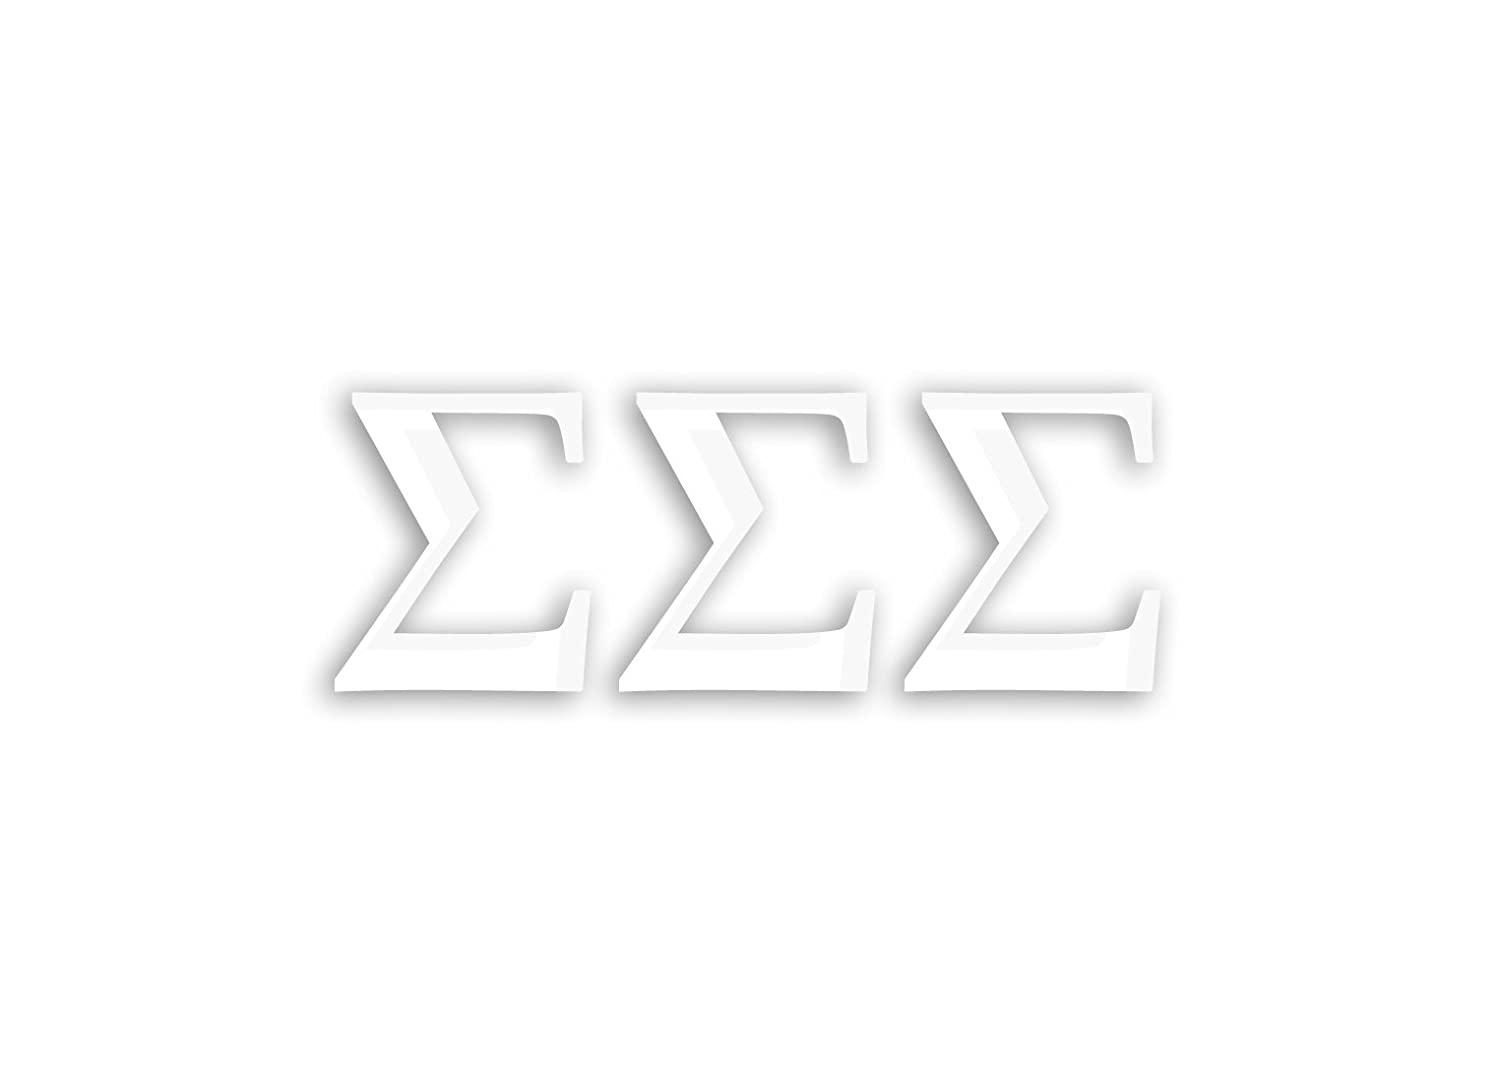 White Officially Licensed Sigma Sigma Sigma 8 x 3 Window Decal